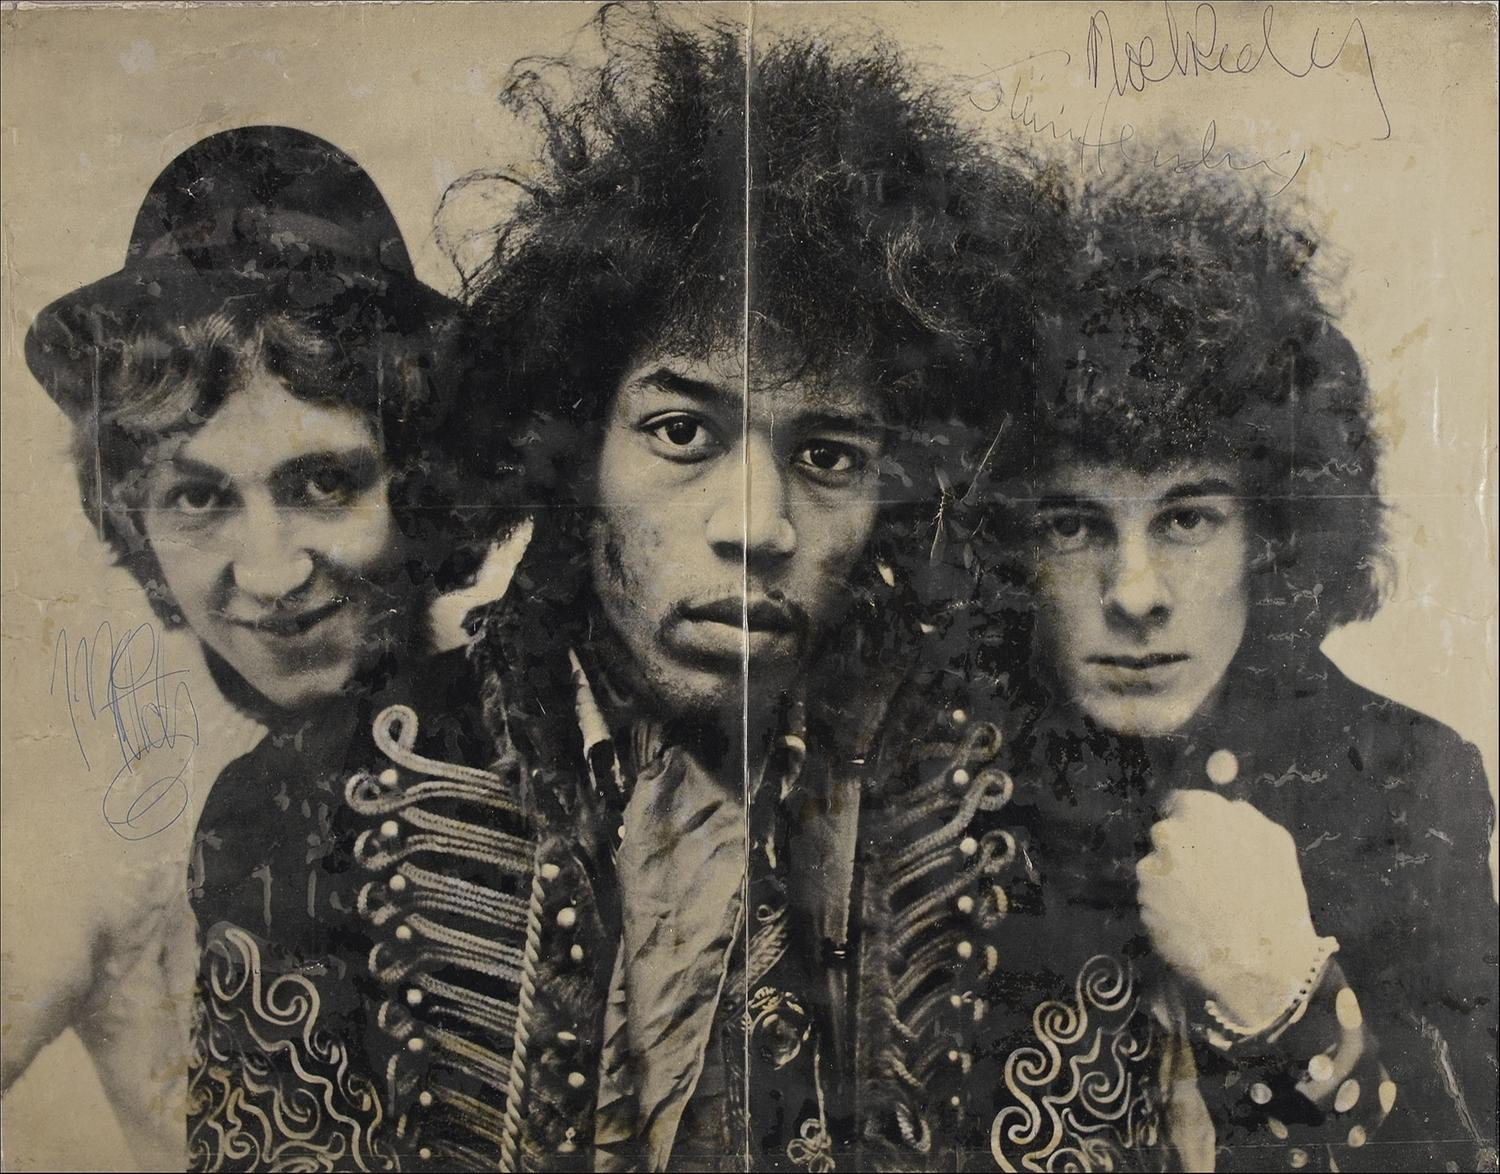 an analysis of the jimi hendrix experience Jimi hendrix was scheduled to perform on a sunday, but rain had washed out many of the performances on what was scheduled to be the final day of the 1969 woodstock art & music fair, and the.